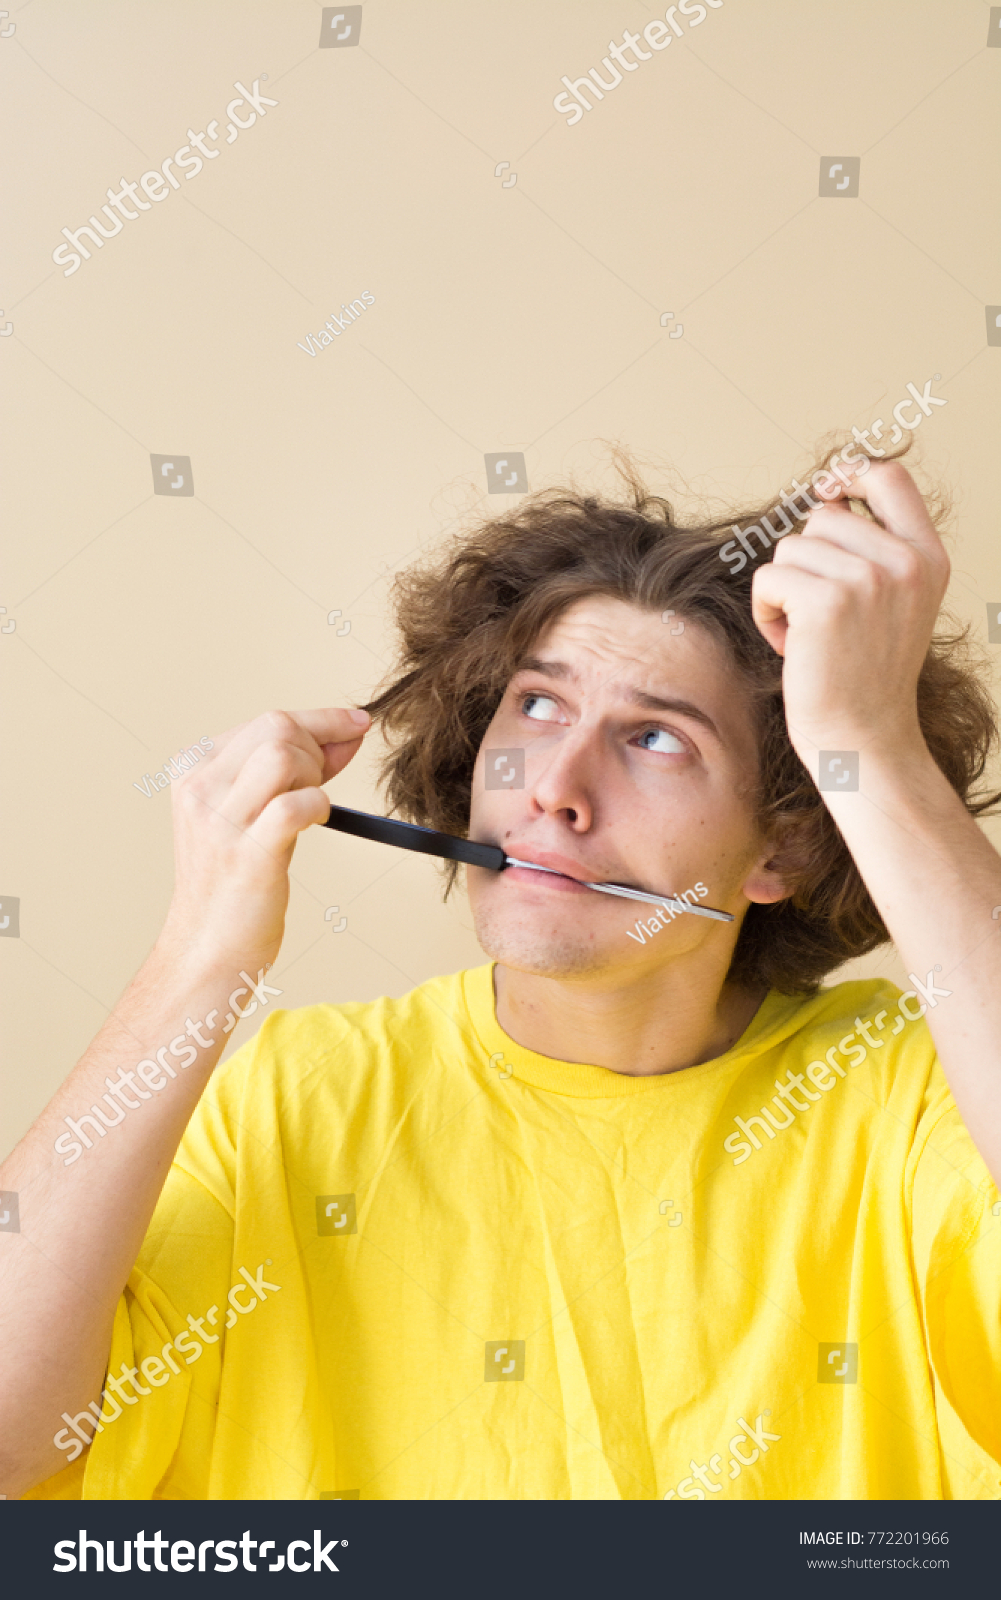 Funny Young Man Needs Haircut Dont Stock Photo Edit Now 772201966